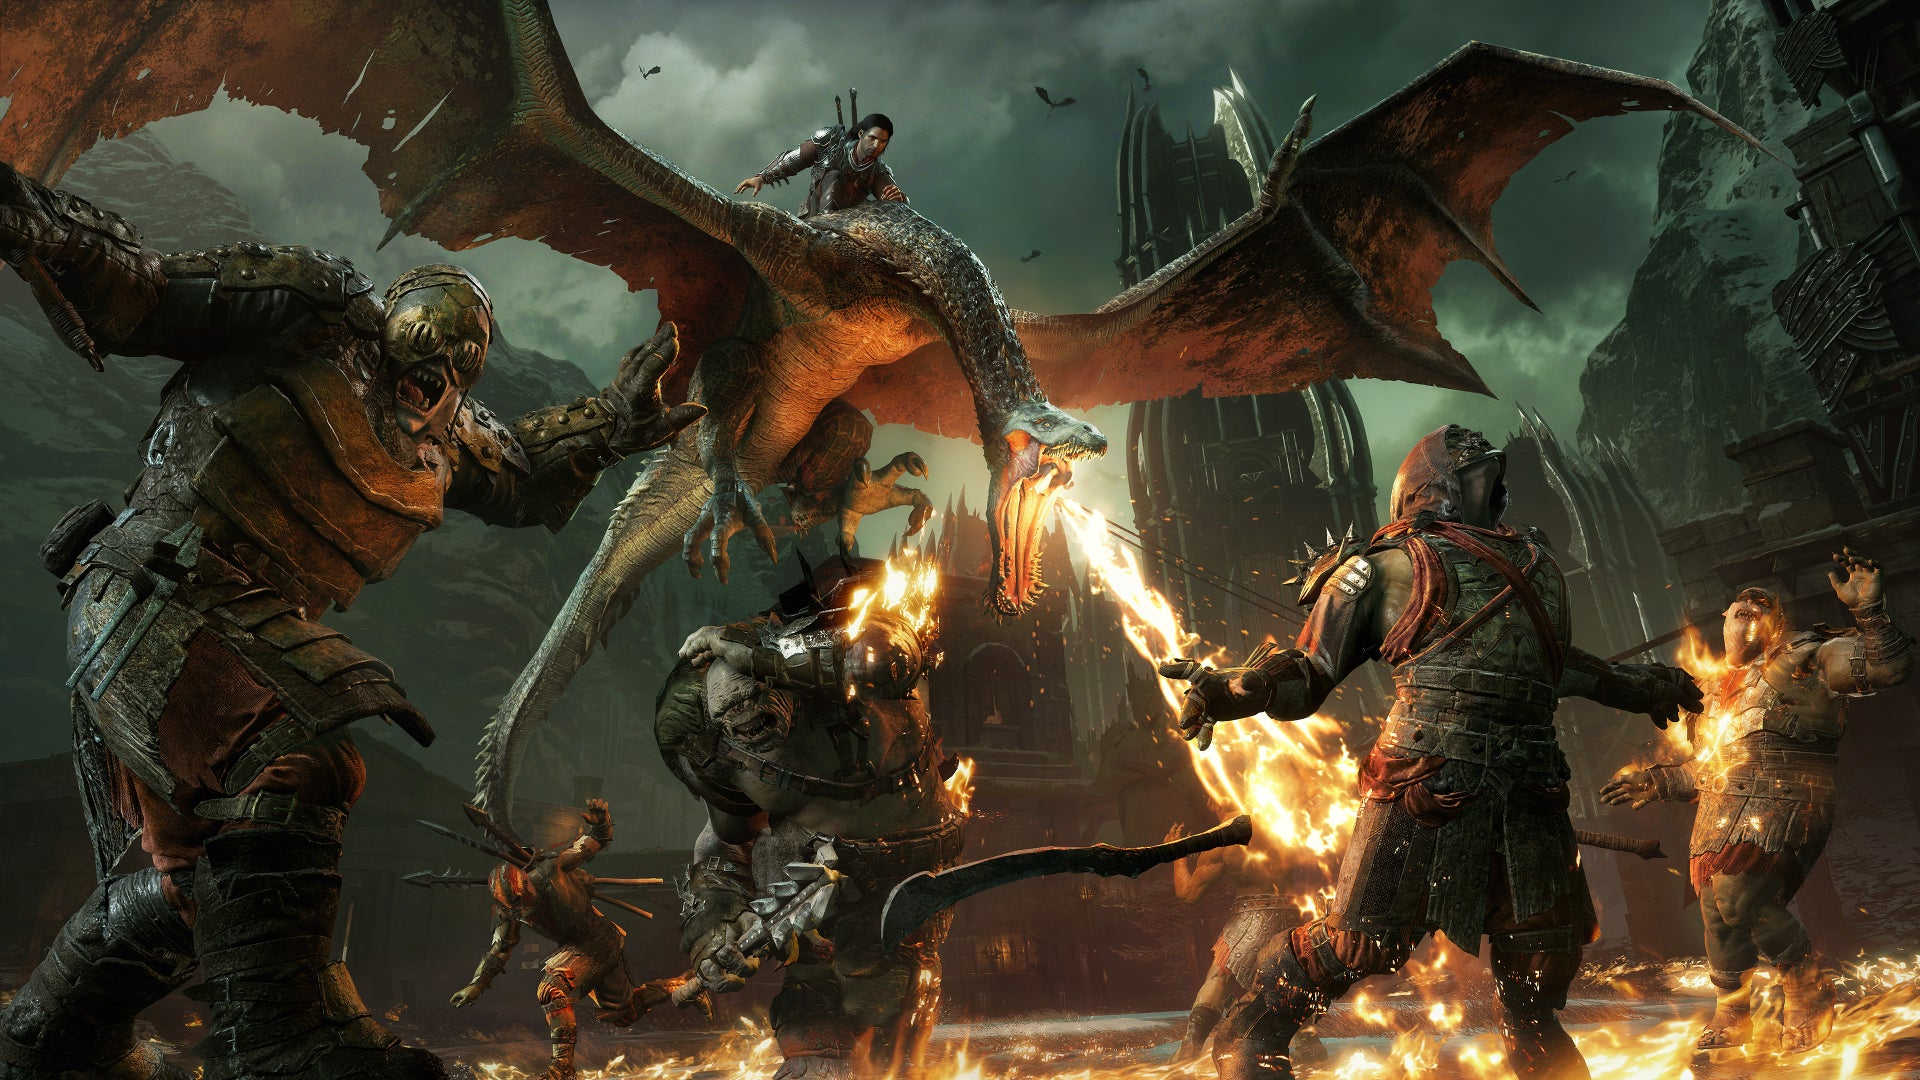 Middle-Earth: Shadow Of War's Nemesis System Is About Friends As Well As Foes